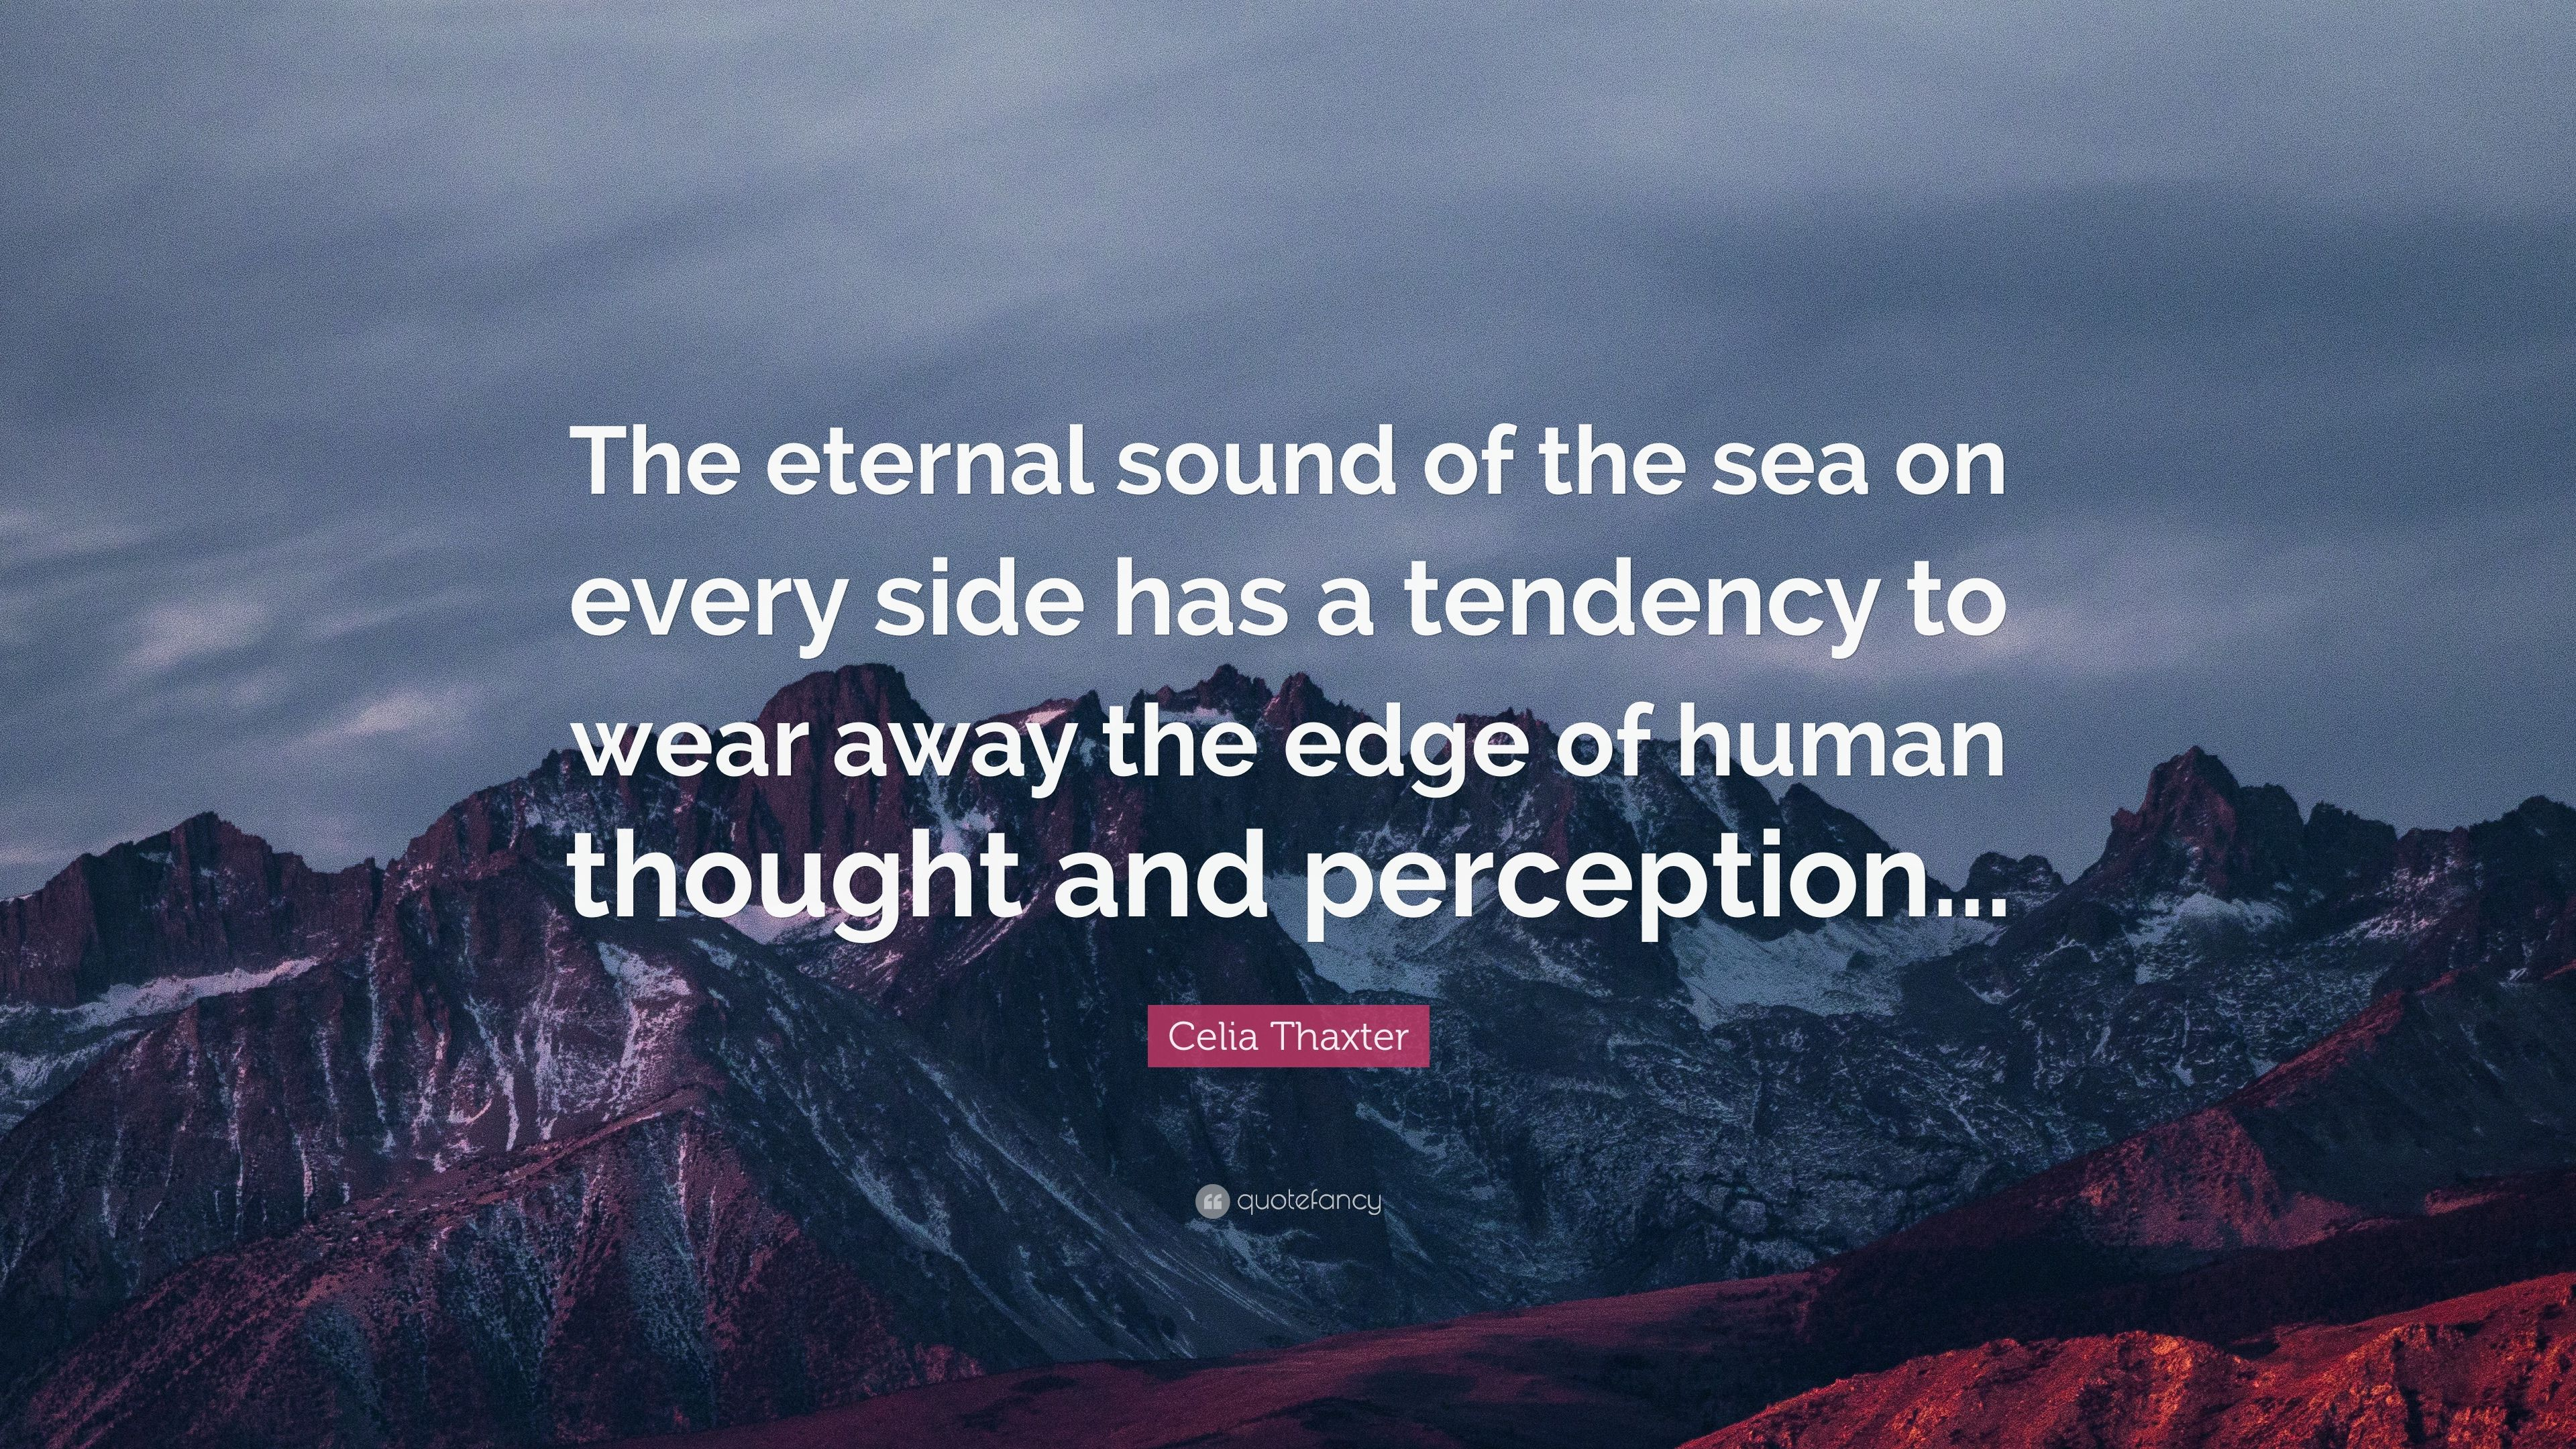 Superior Celia Thaxter Quote: U201cThe Eternal Sound Of The Sea On Every Side Has A